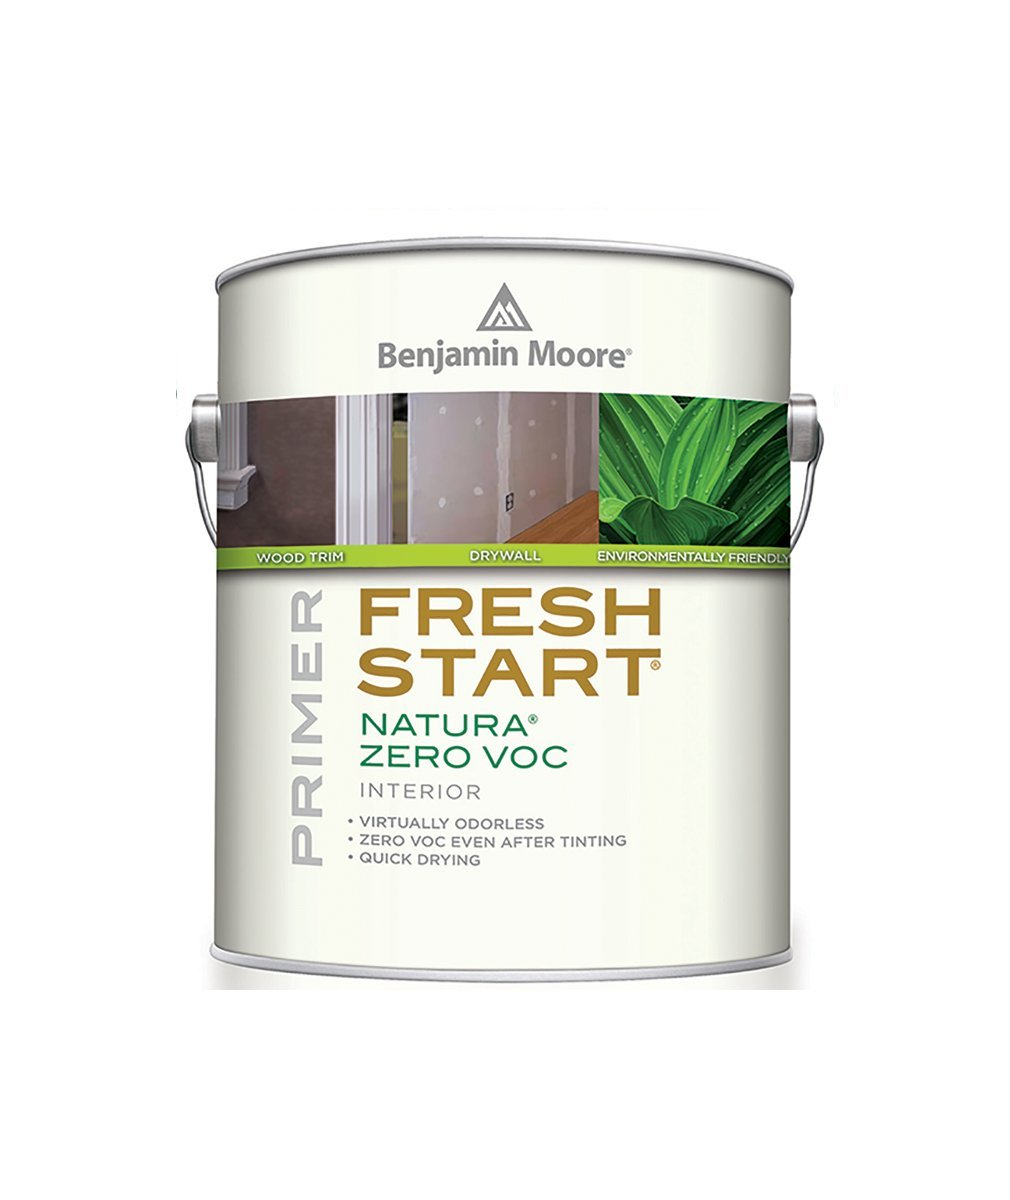 Benjamin Moore Fresh Start Natura Zero VOC Primer, Creative Paint in San Francisco, South Bay & East Bay.